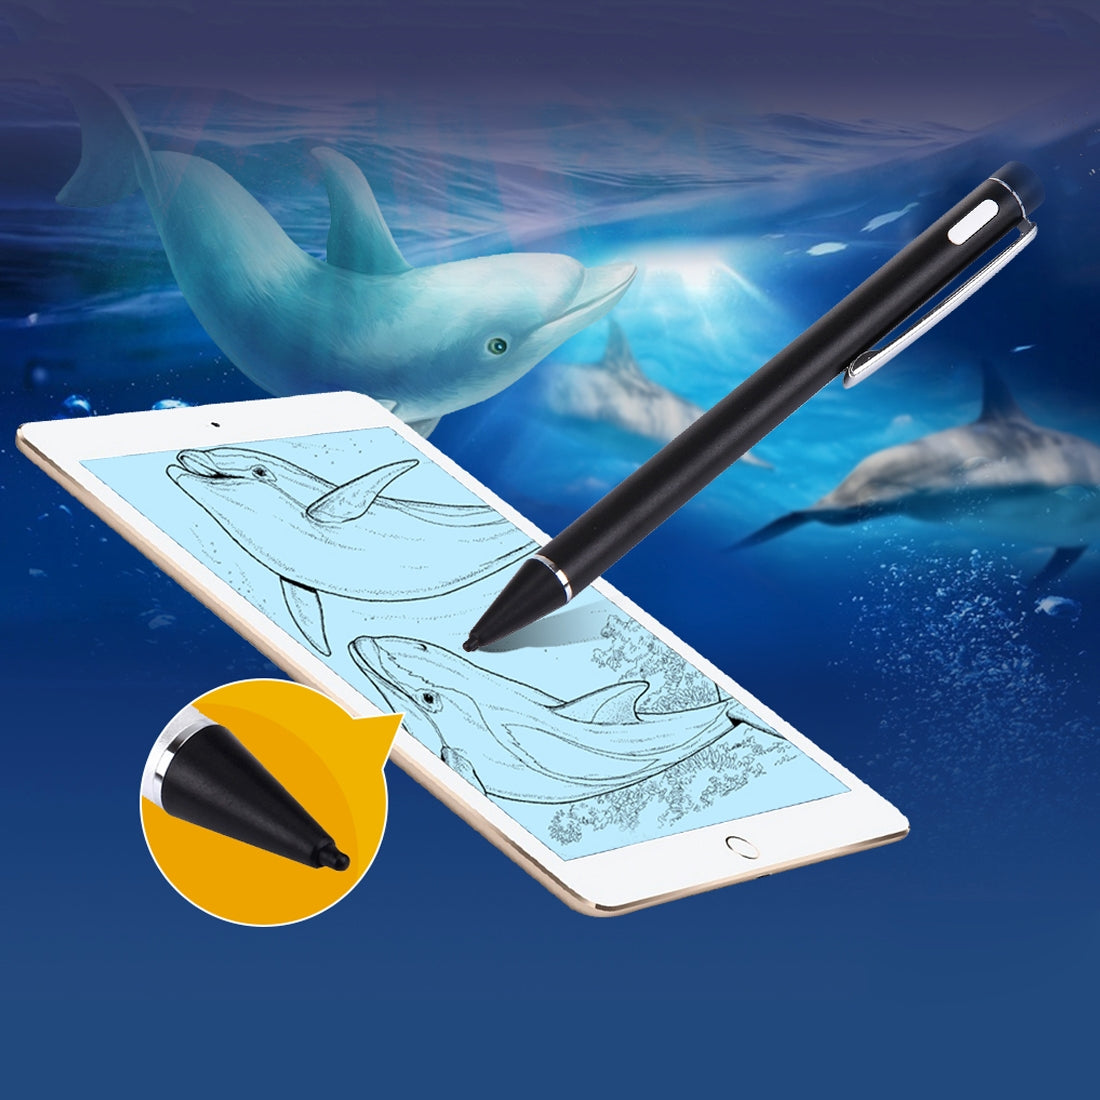 Universal Rechargeable Capacitive Touch Screen Stylus Pen, For iPhone, iPad, Samsung